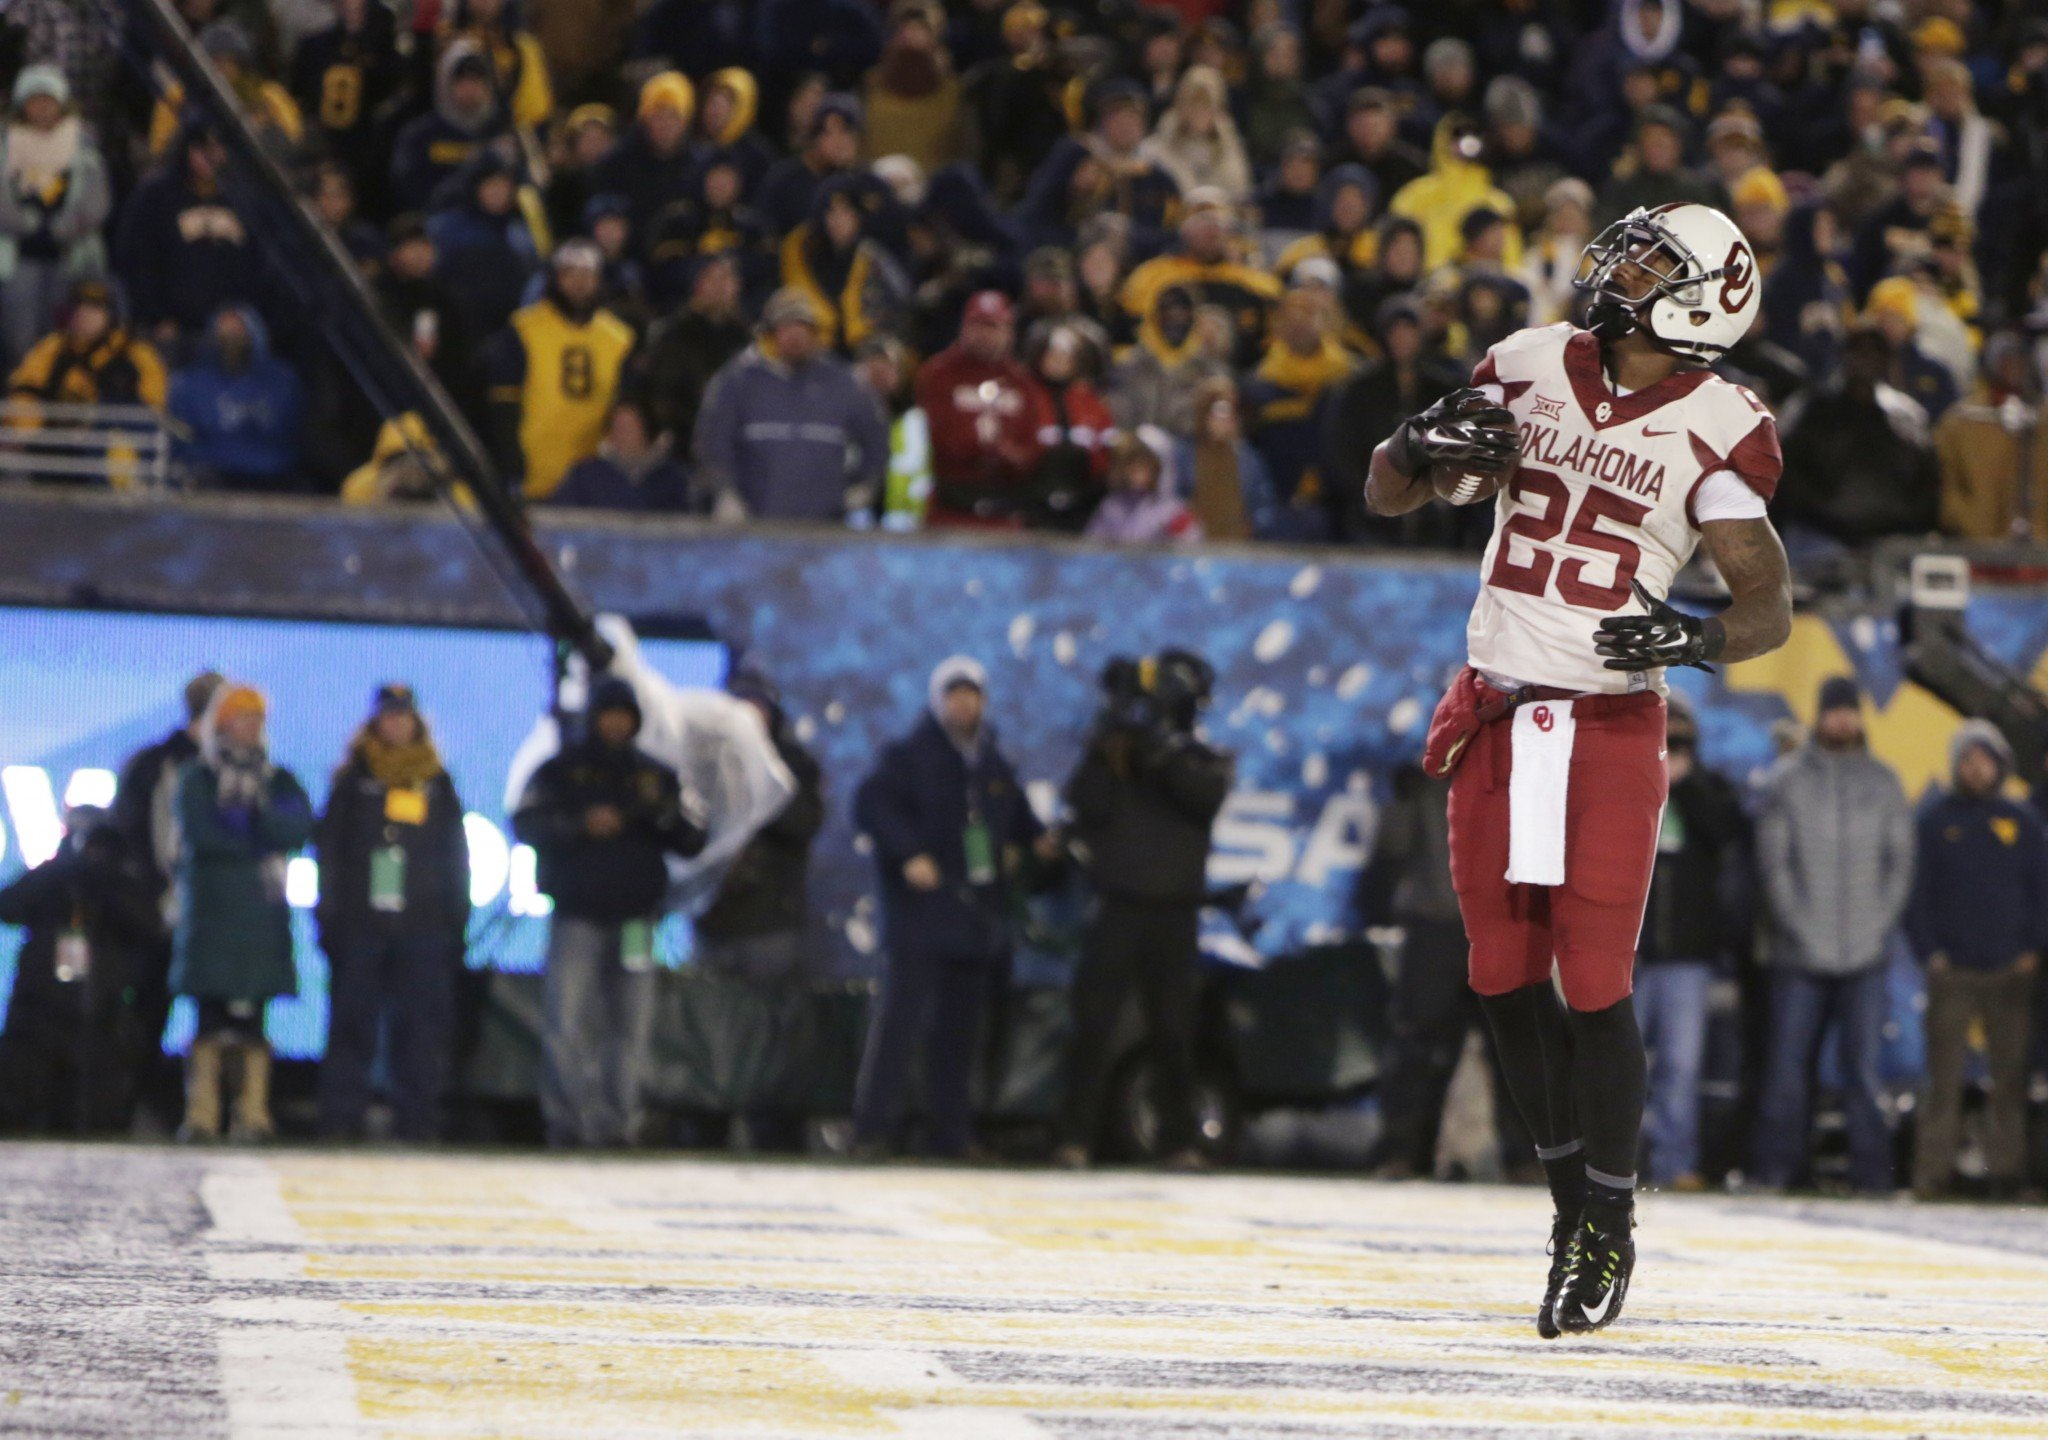 Oklahoma running back Joe Mixon rushed for 147 yards in Saturday's win over West Virginia. (AP Photo/Raymond Thompson)